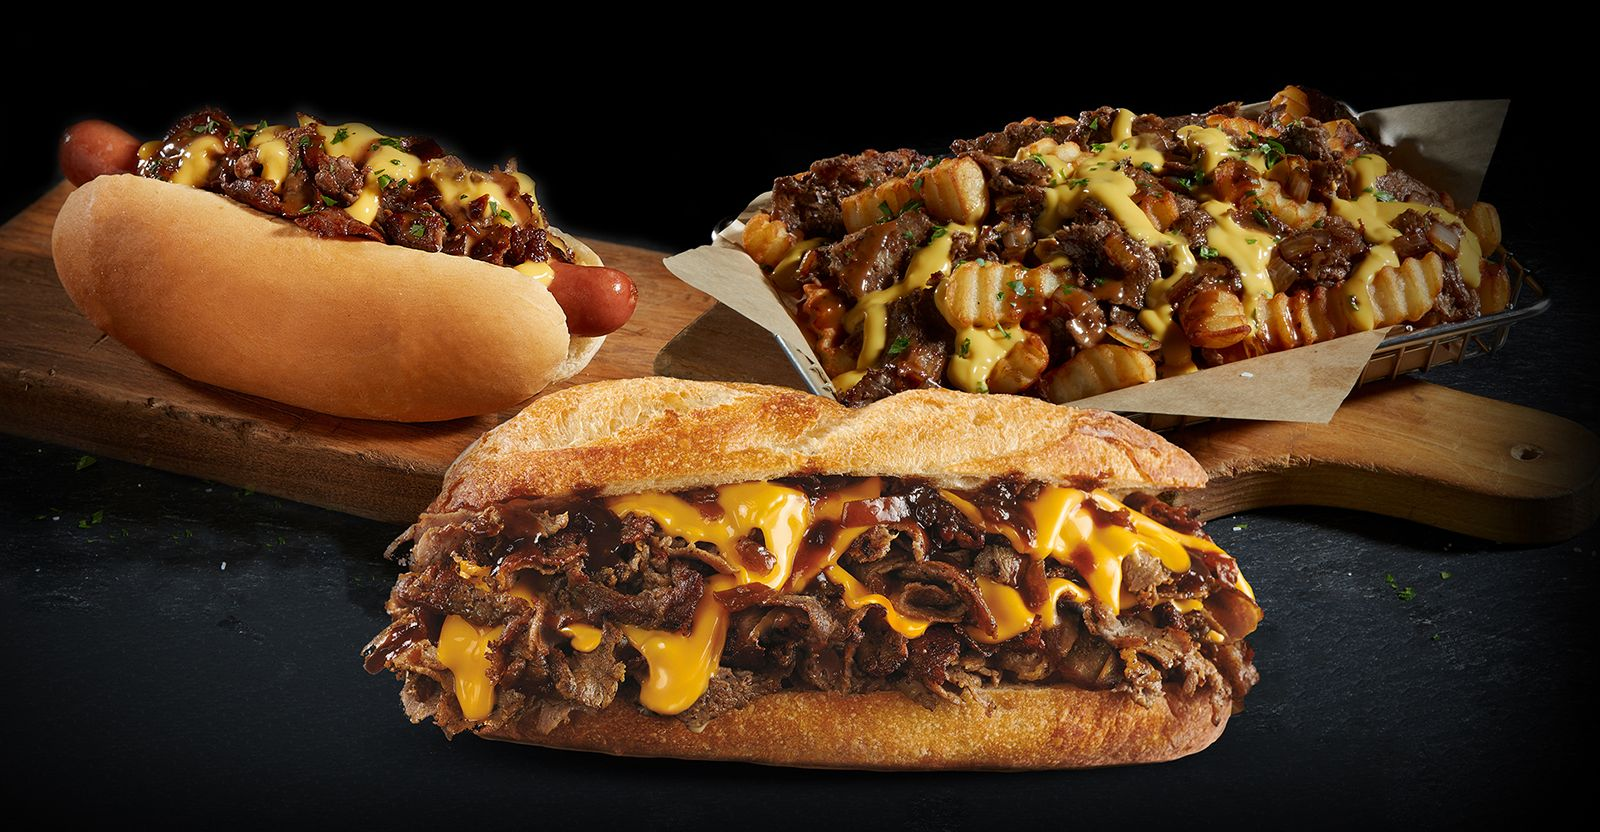 Nathan's Famous Expands NY Cheesesteak Menu, Now Includes Topped Hot Dog and Fries Alongside Popular Hero Sandwich